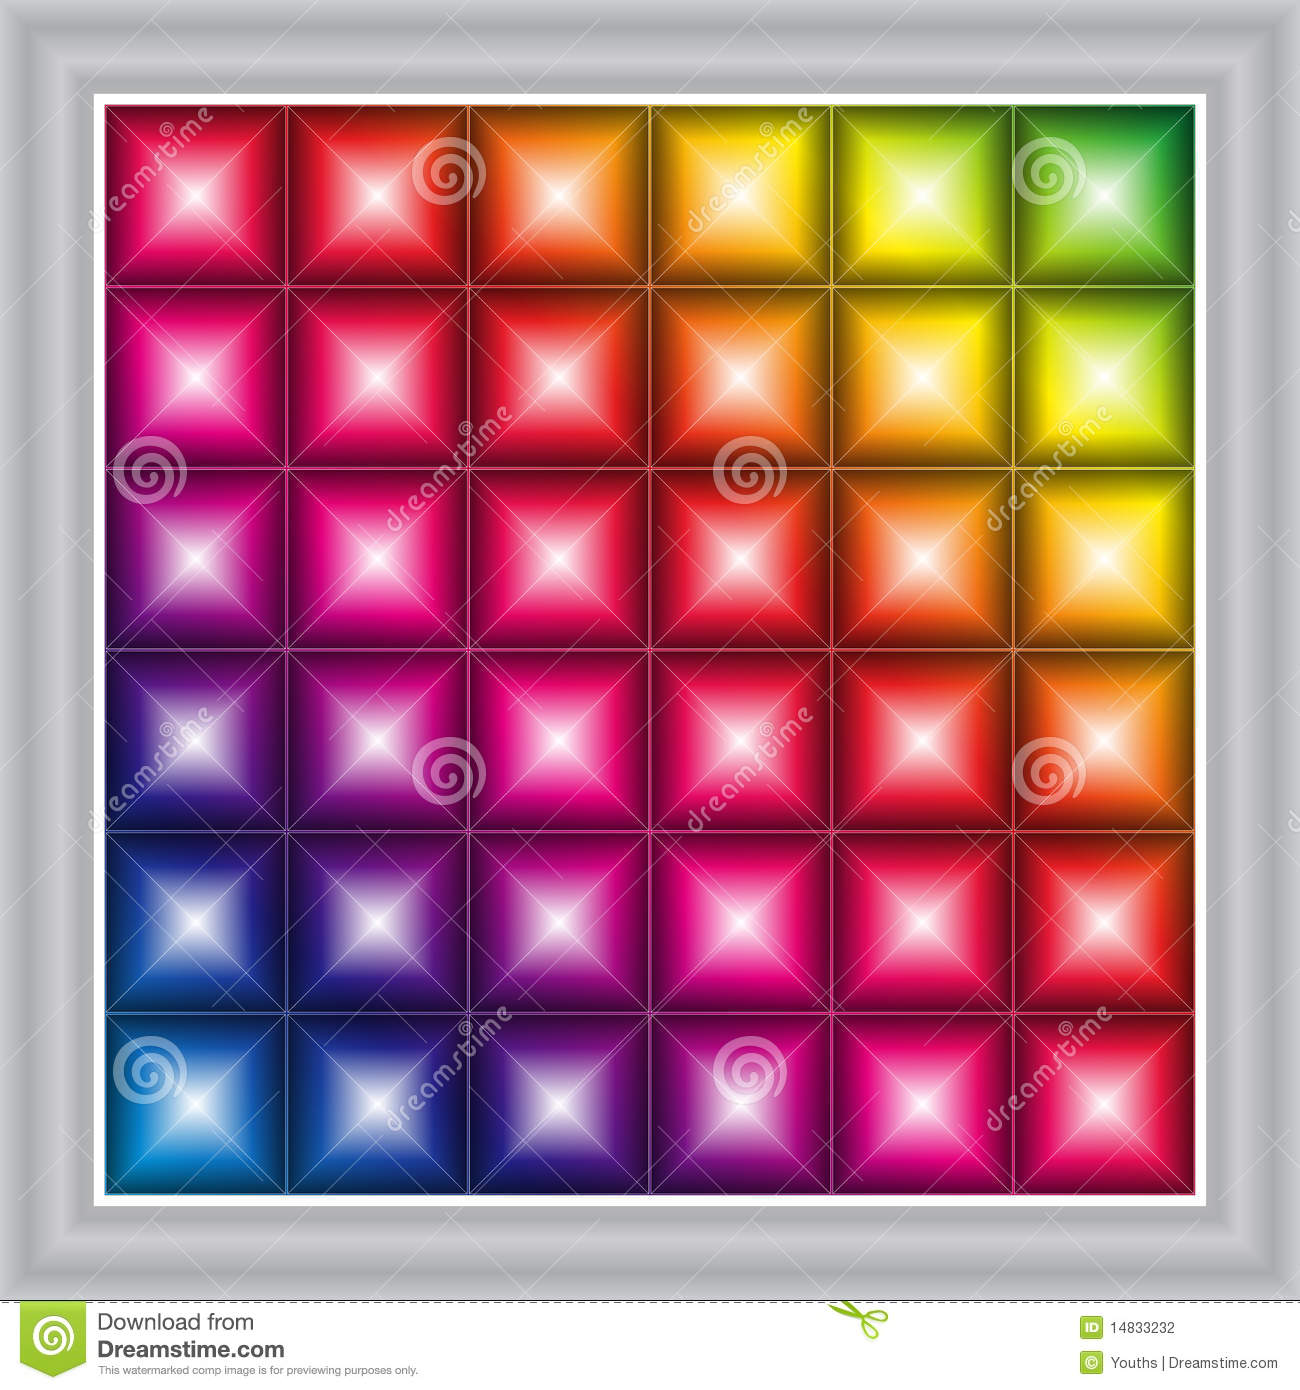 LED display background (vector)